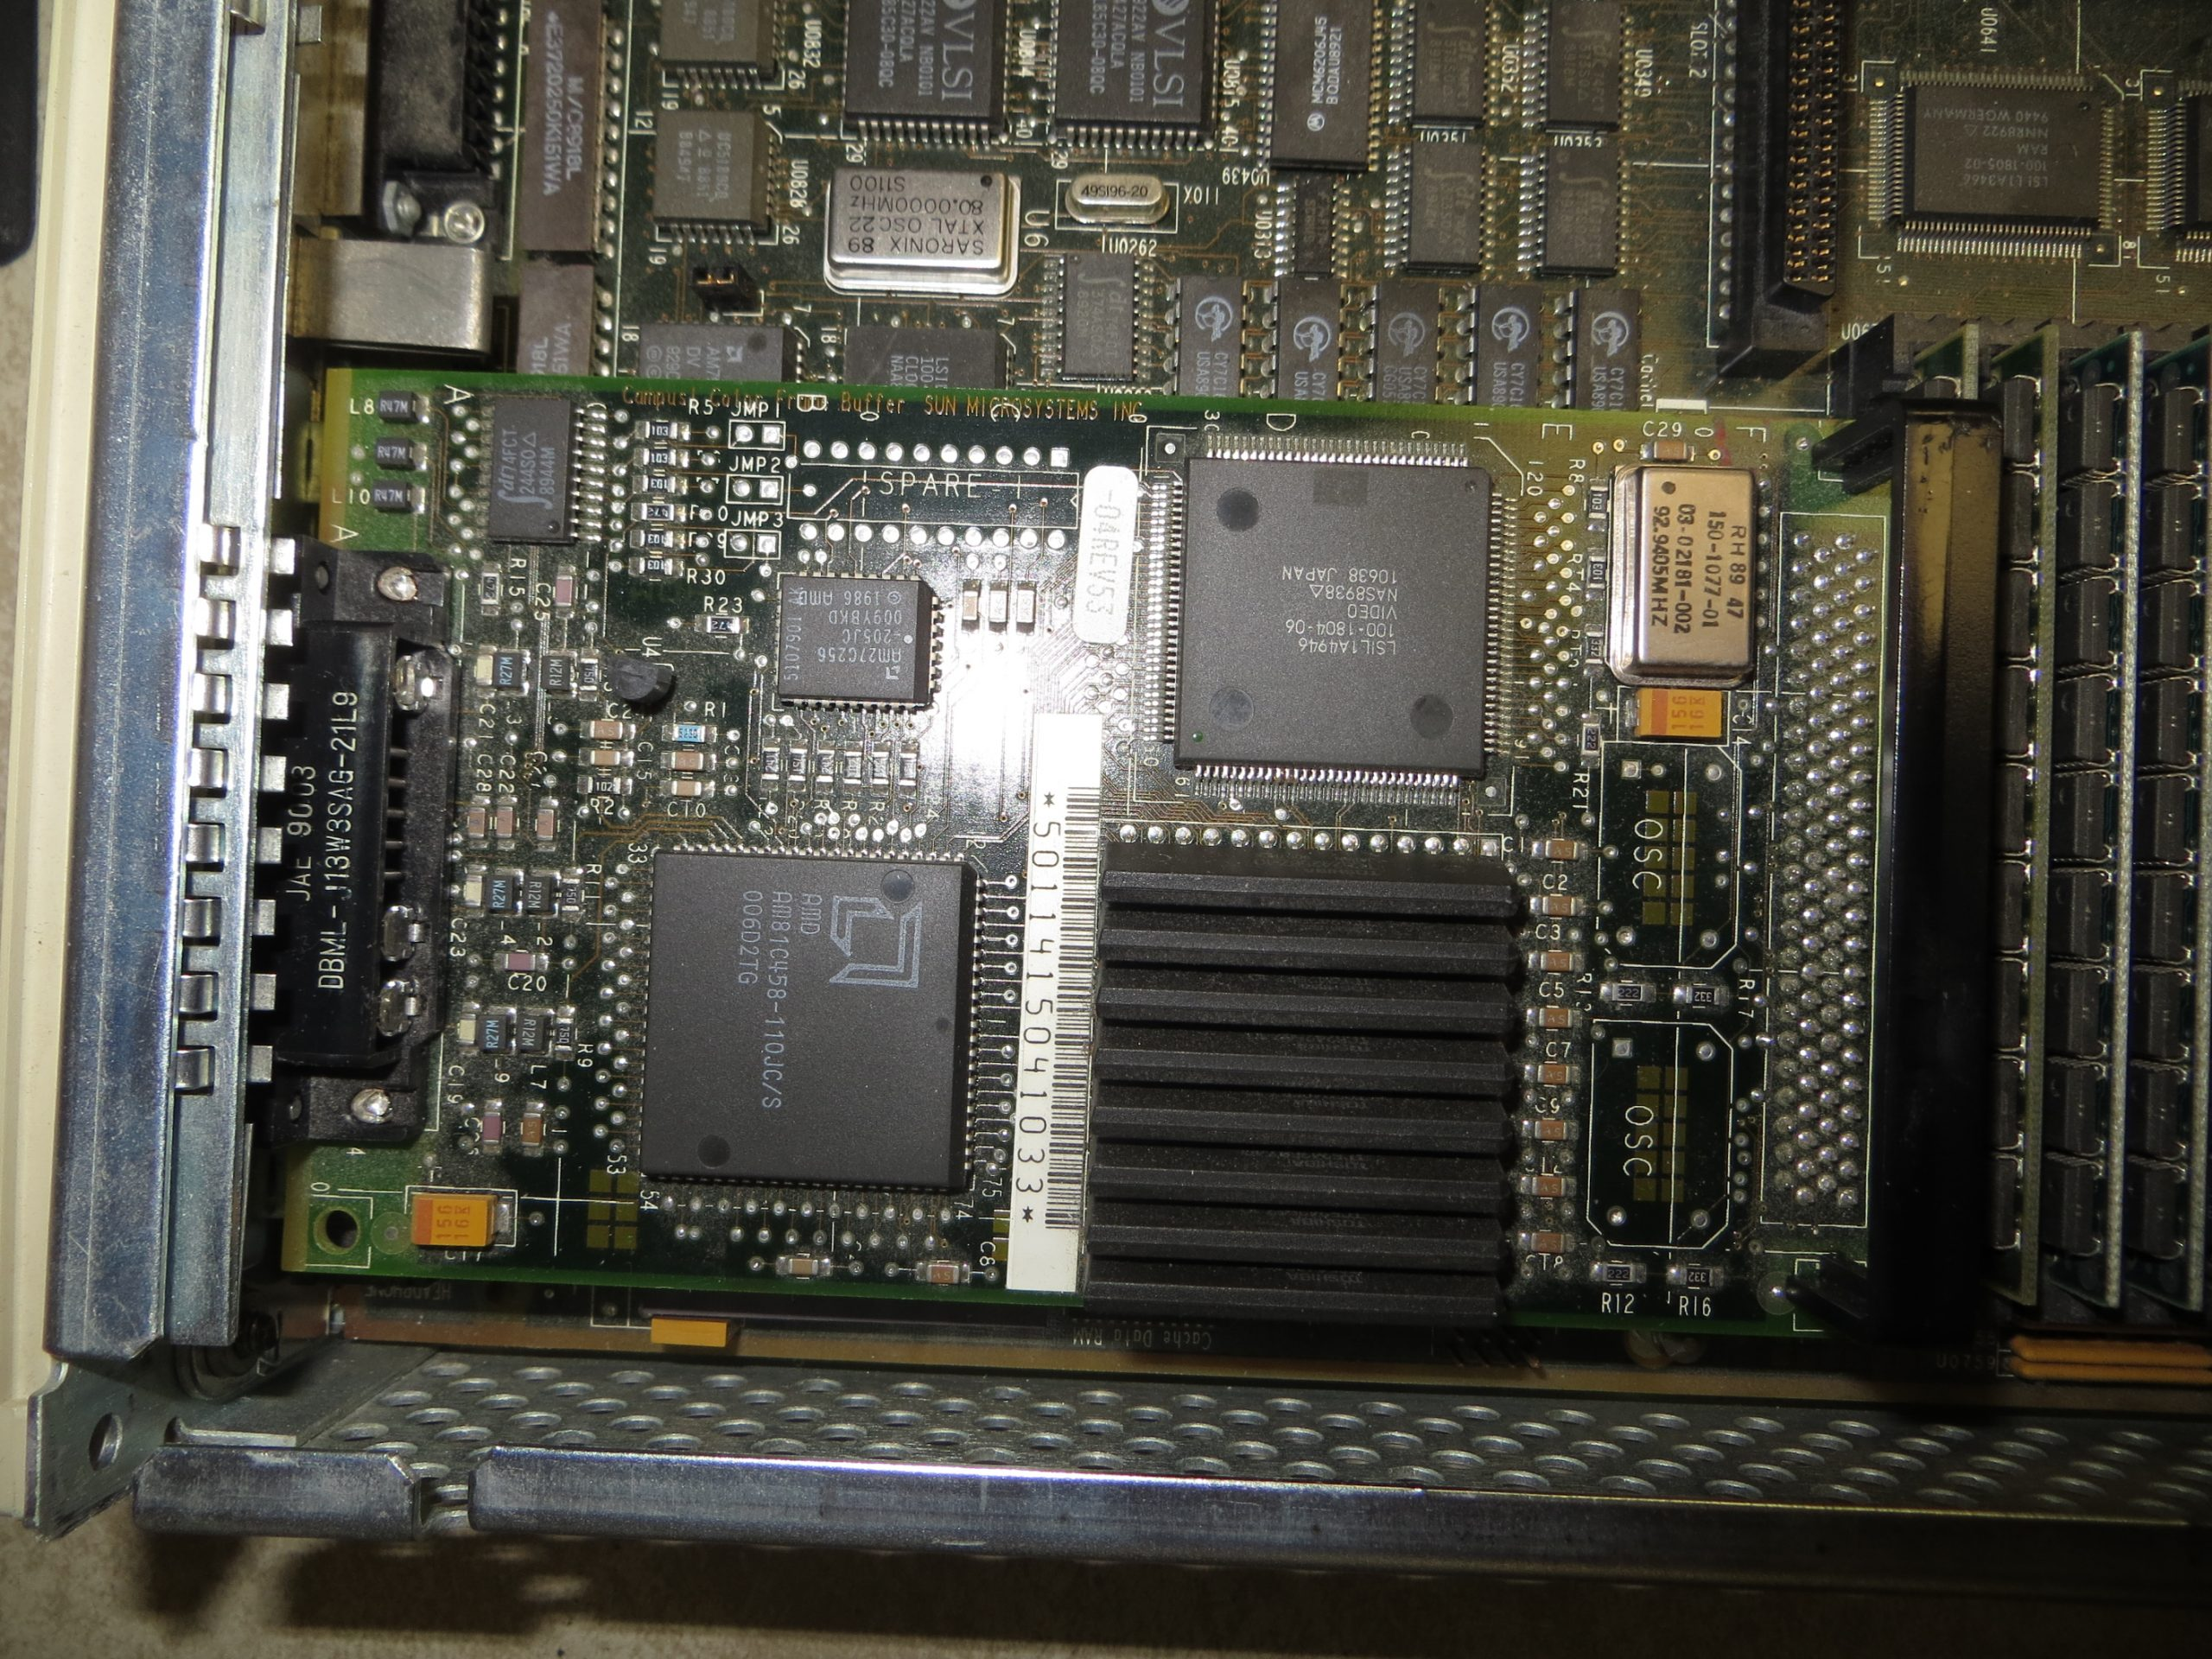 A top view of the replacement SBus color Video Card